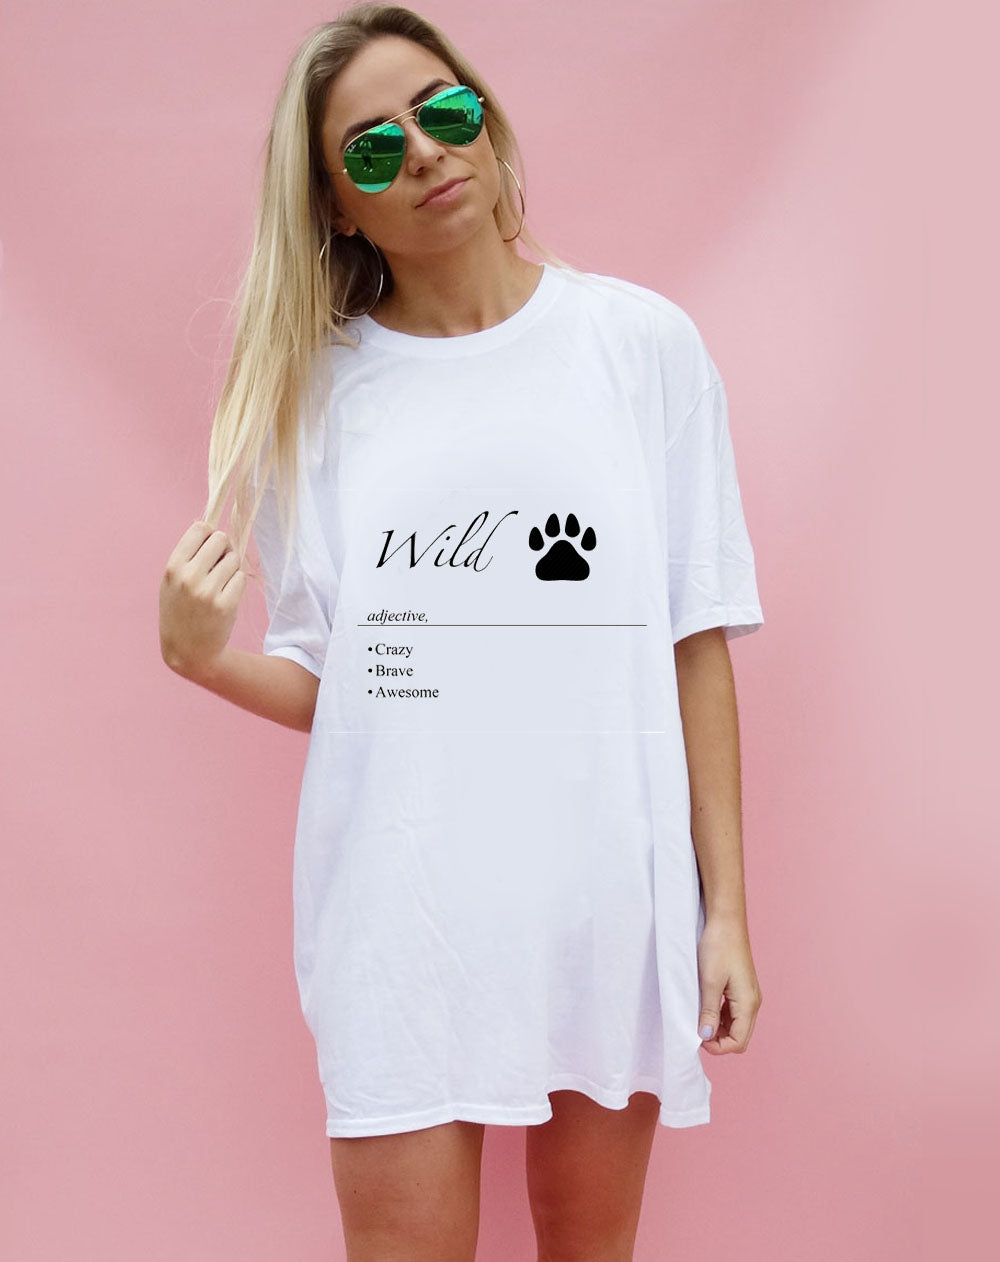 Wild Definition oversize Tshirt